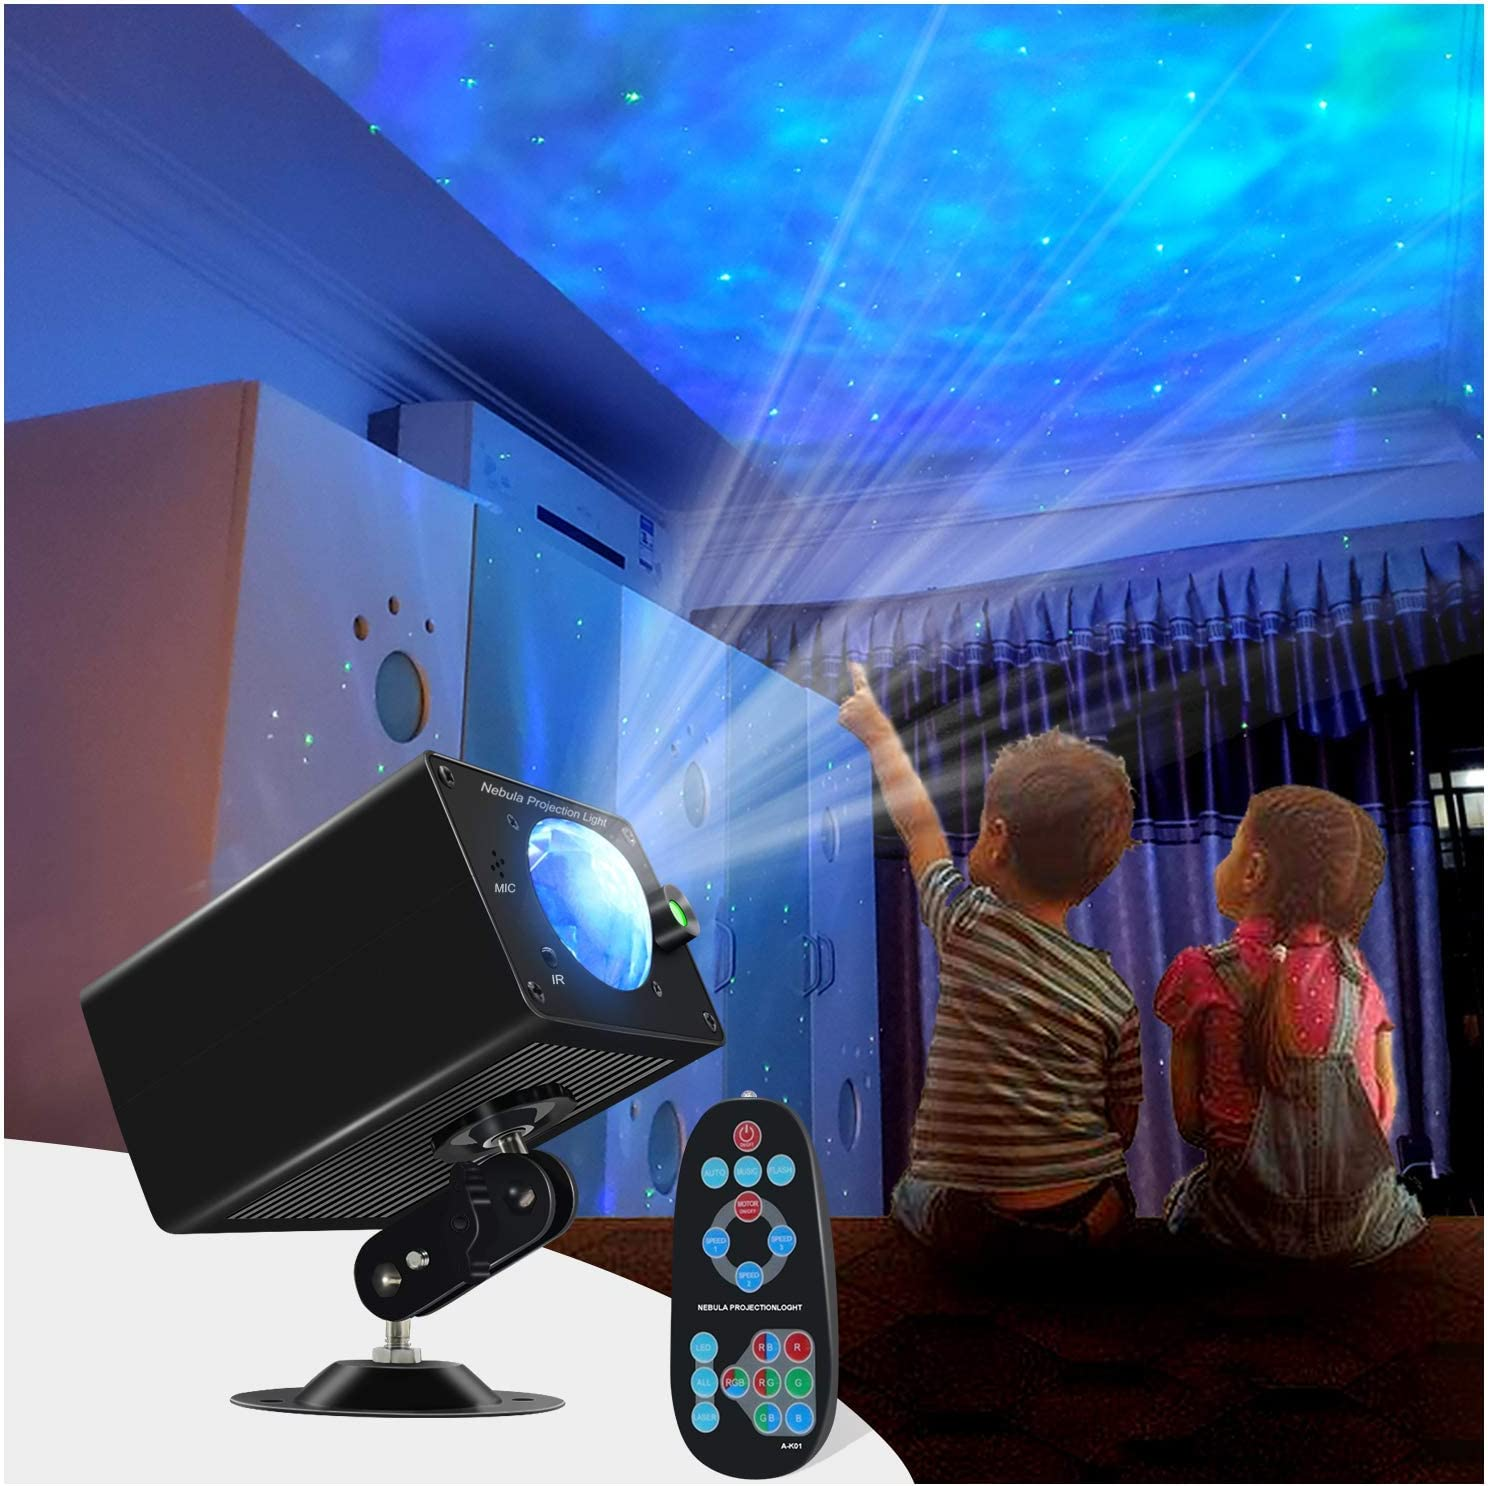 Star Projector with Nebula Cloud,Galaxy Projector for Kids Adults Bedroom/Party/Home Room Ceiling Decor Skylight Ocean Wave Starry Projector Night Light with Remote Control